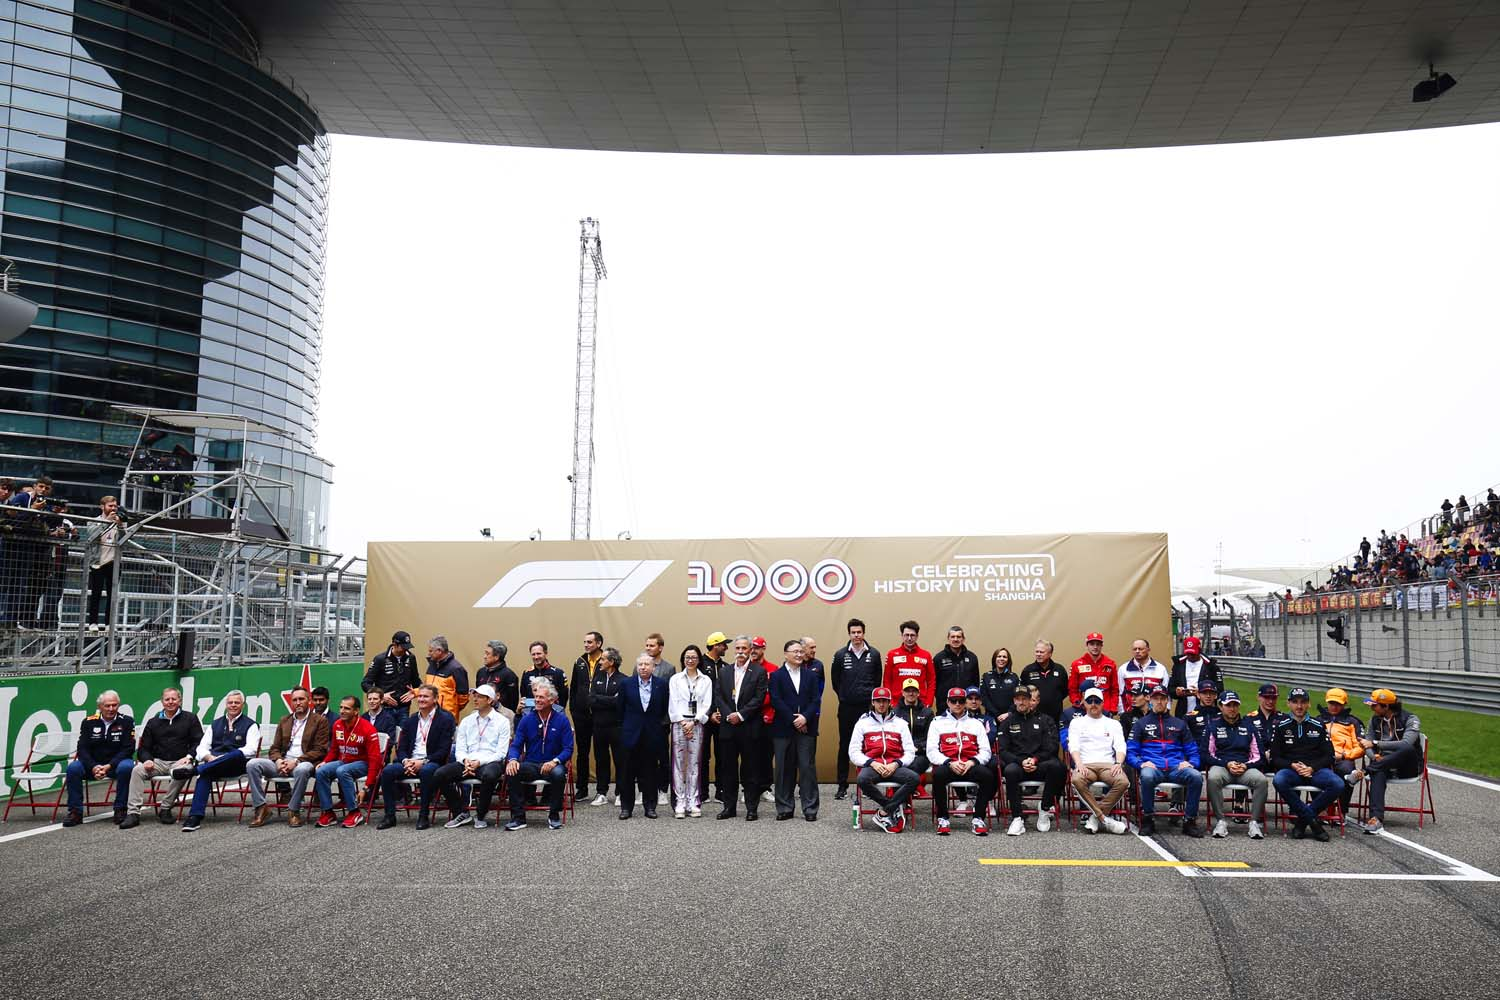 F1 personnel pose for a photo to commemorate the 1000th Grand Prix